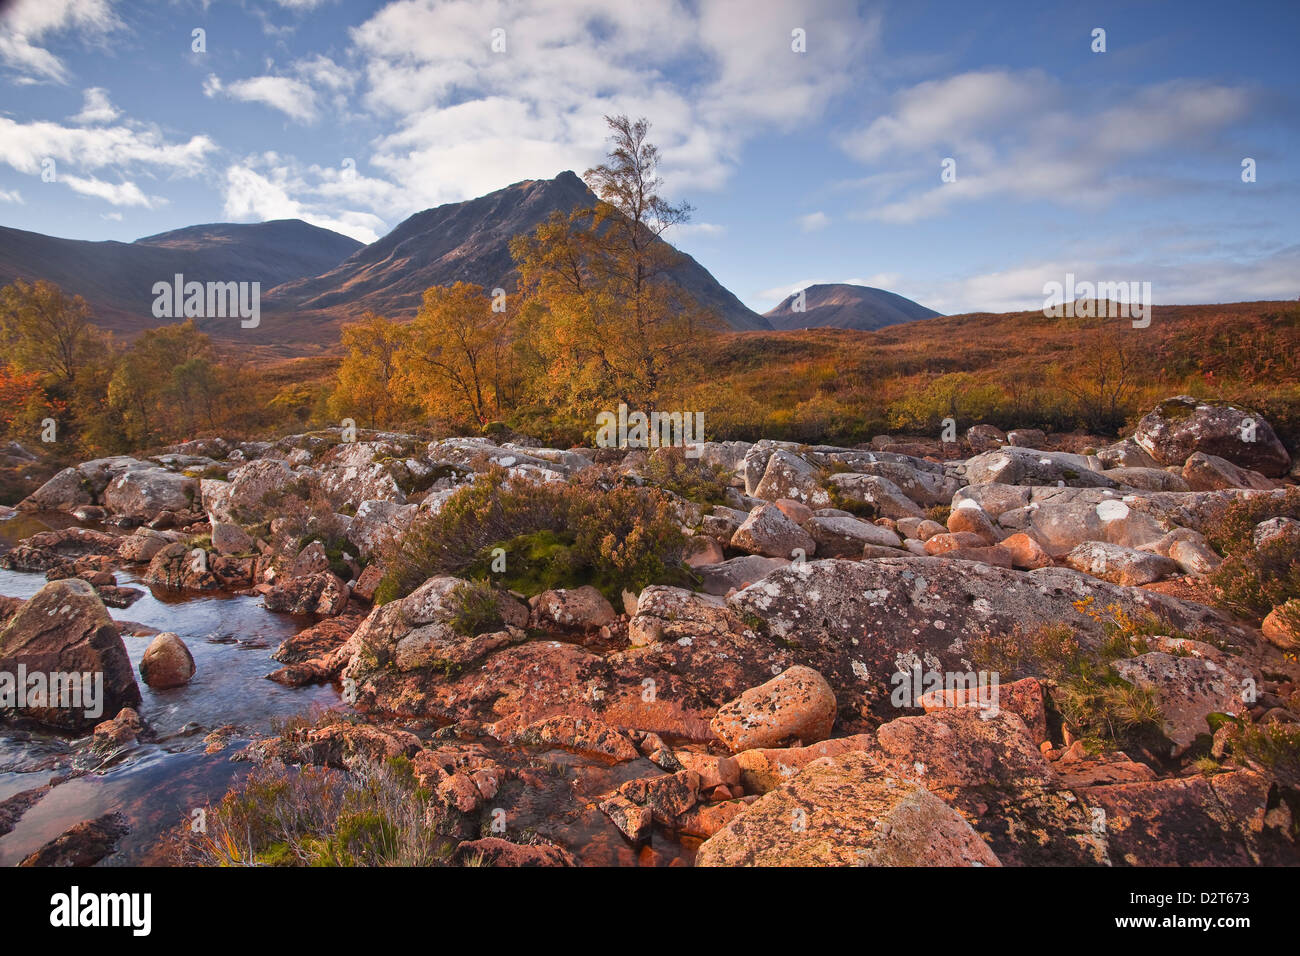 Stob a Ghlais Choire with the river Etive flowing past it, an area on the corner of Glen Coe and Glen Etive, Scotland, - Stock Image